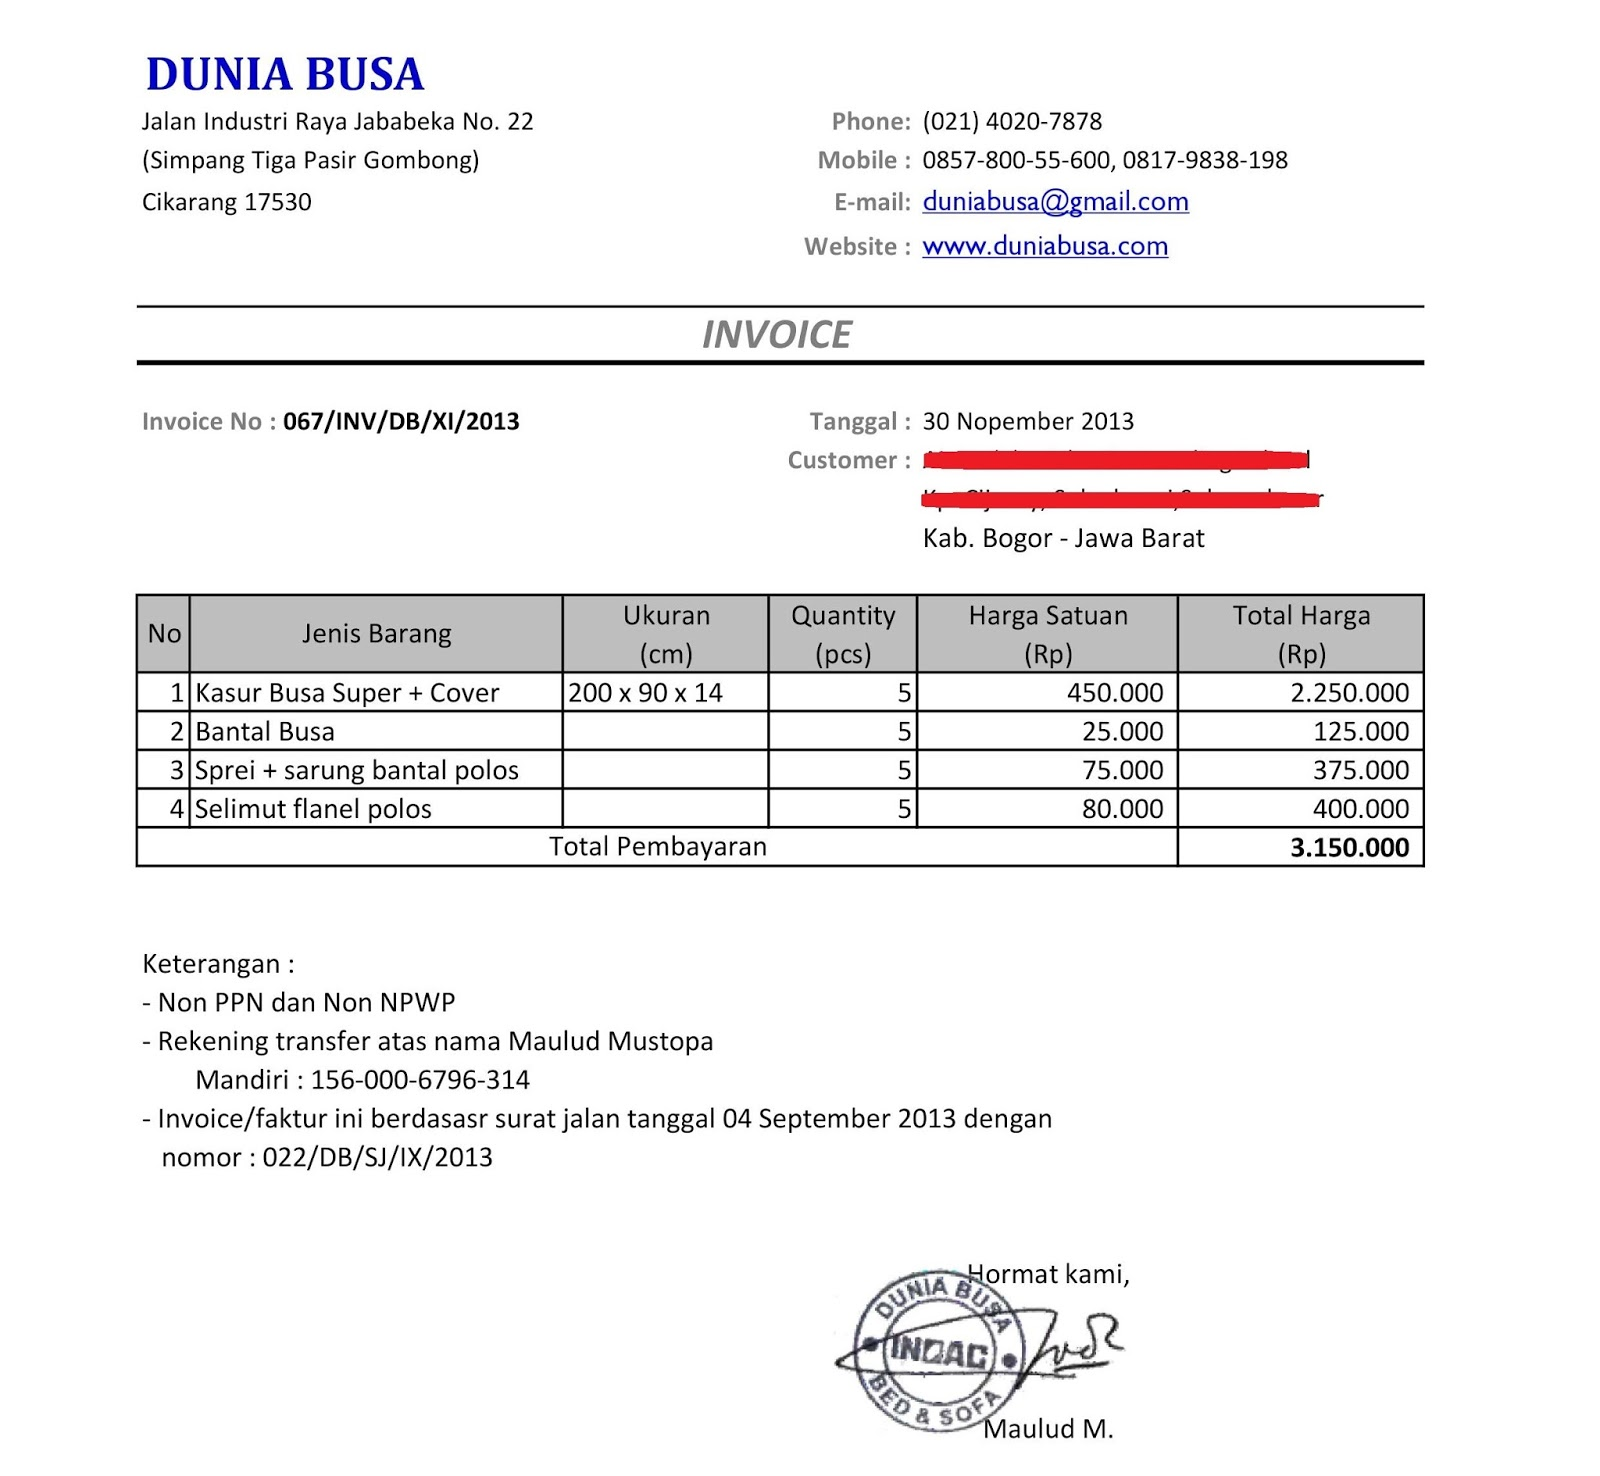 Centralasianshepherdus  Prepossessing Free Invoice Online  Create Invoice Online  Invoice Template  With Hot Contoh Format Invoice Atau Surat Tagihan  Brankas Arsip  Free Invoice Online With Appealing Google Doc Invoice Also Free Printable Invoice Forms In Addition Ford F  Invoice Price And Free Invoice Template For Word As Well As Invoice Templates For Mac Additionally  Invoice Template From Sklepco With Centralasianshepherdus  Hot Free Invoice Online  Create Invoice Online  Invoice Template  With Appealing Contoh Format Invoice Atau Surat Tagihan  Brankas Arsip  Free Invoice Online And Prepossessing Google Doc Invoice Also Free Printable Invoice Forms In Addition Ford F  Invoice Price From Sklepco